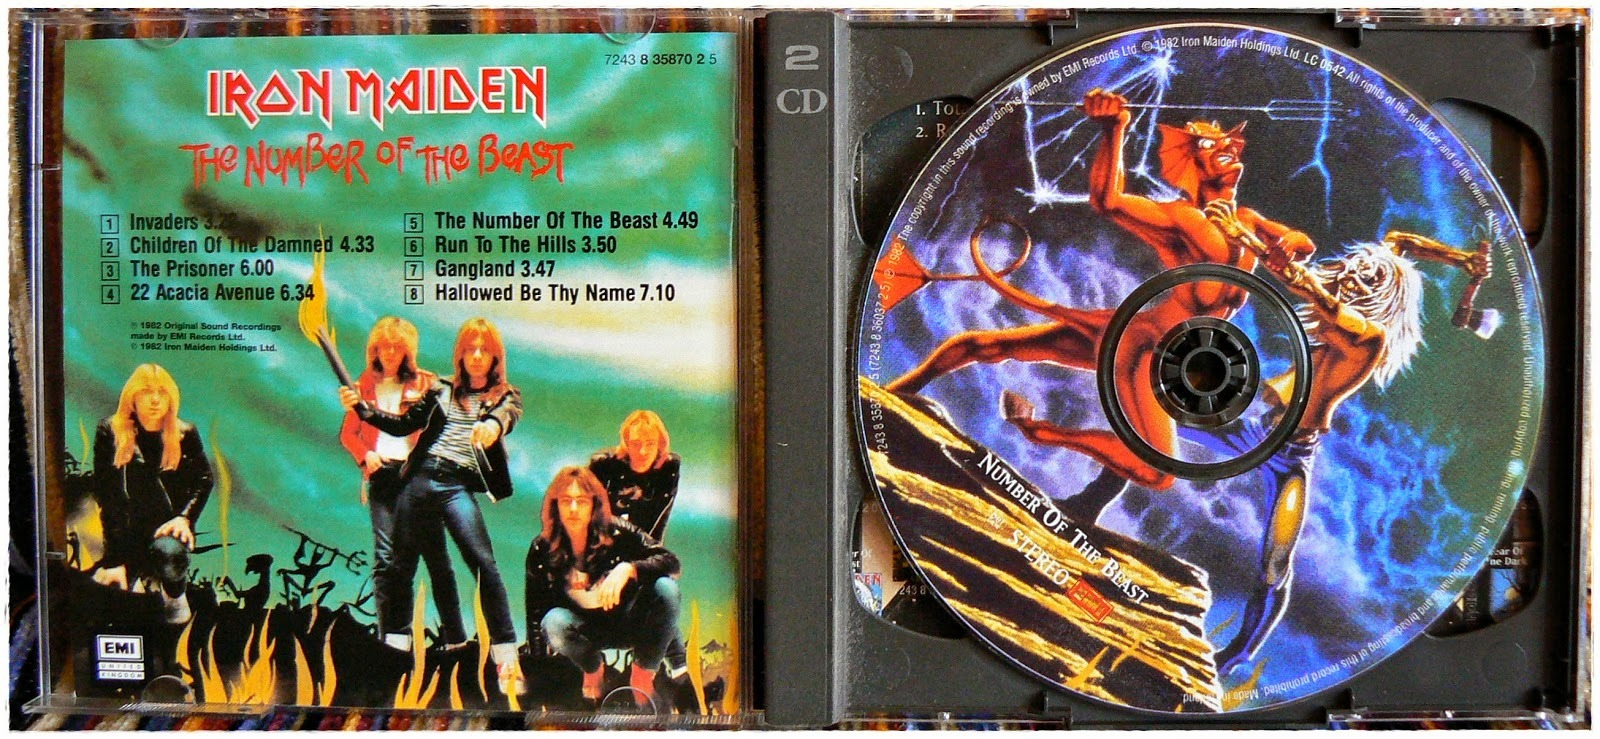 Hoy cumple 35 años The Number of the Beast de Iron Maiden